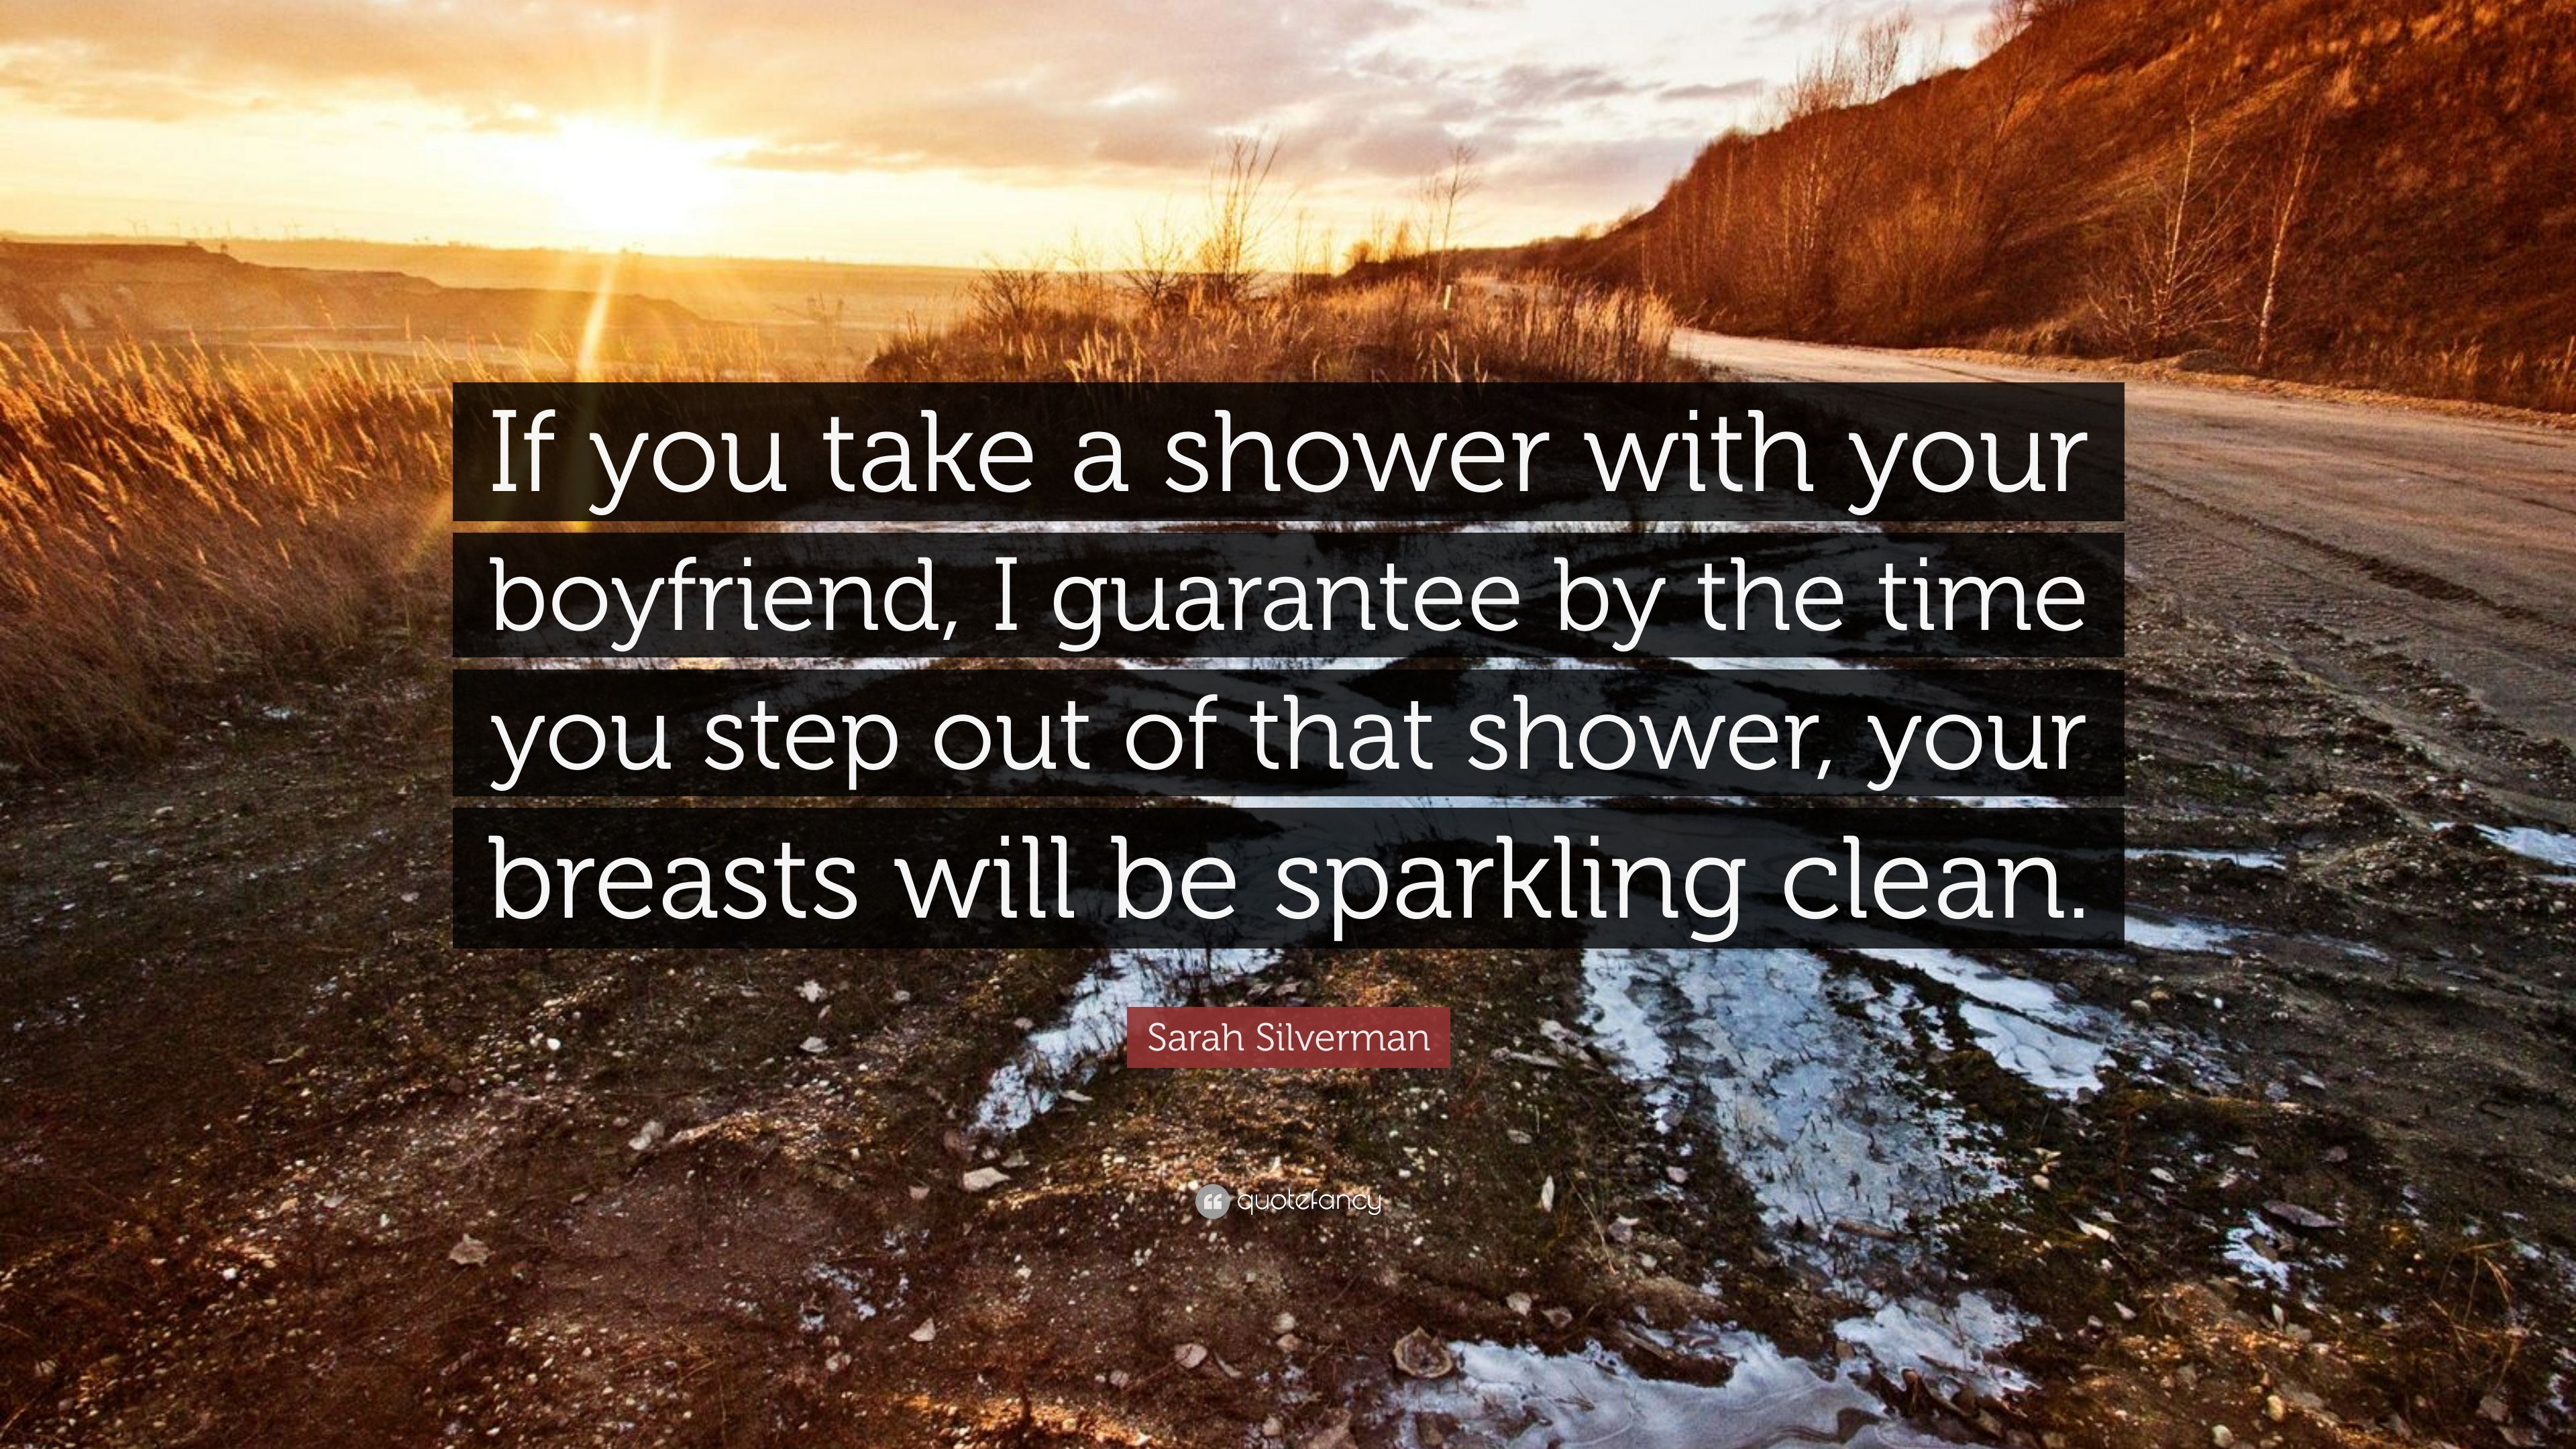 what to do in the shower with your boyfriend